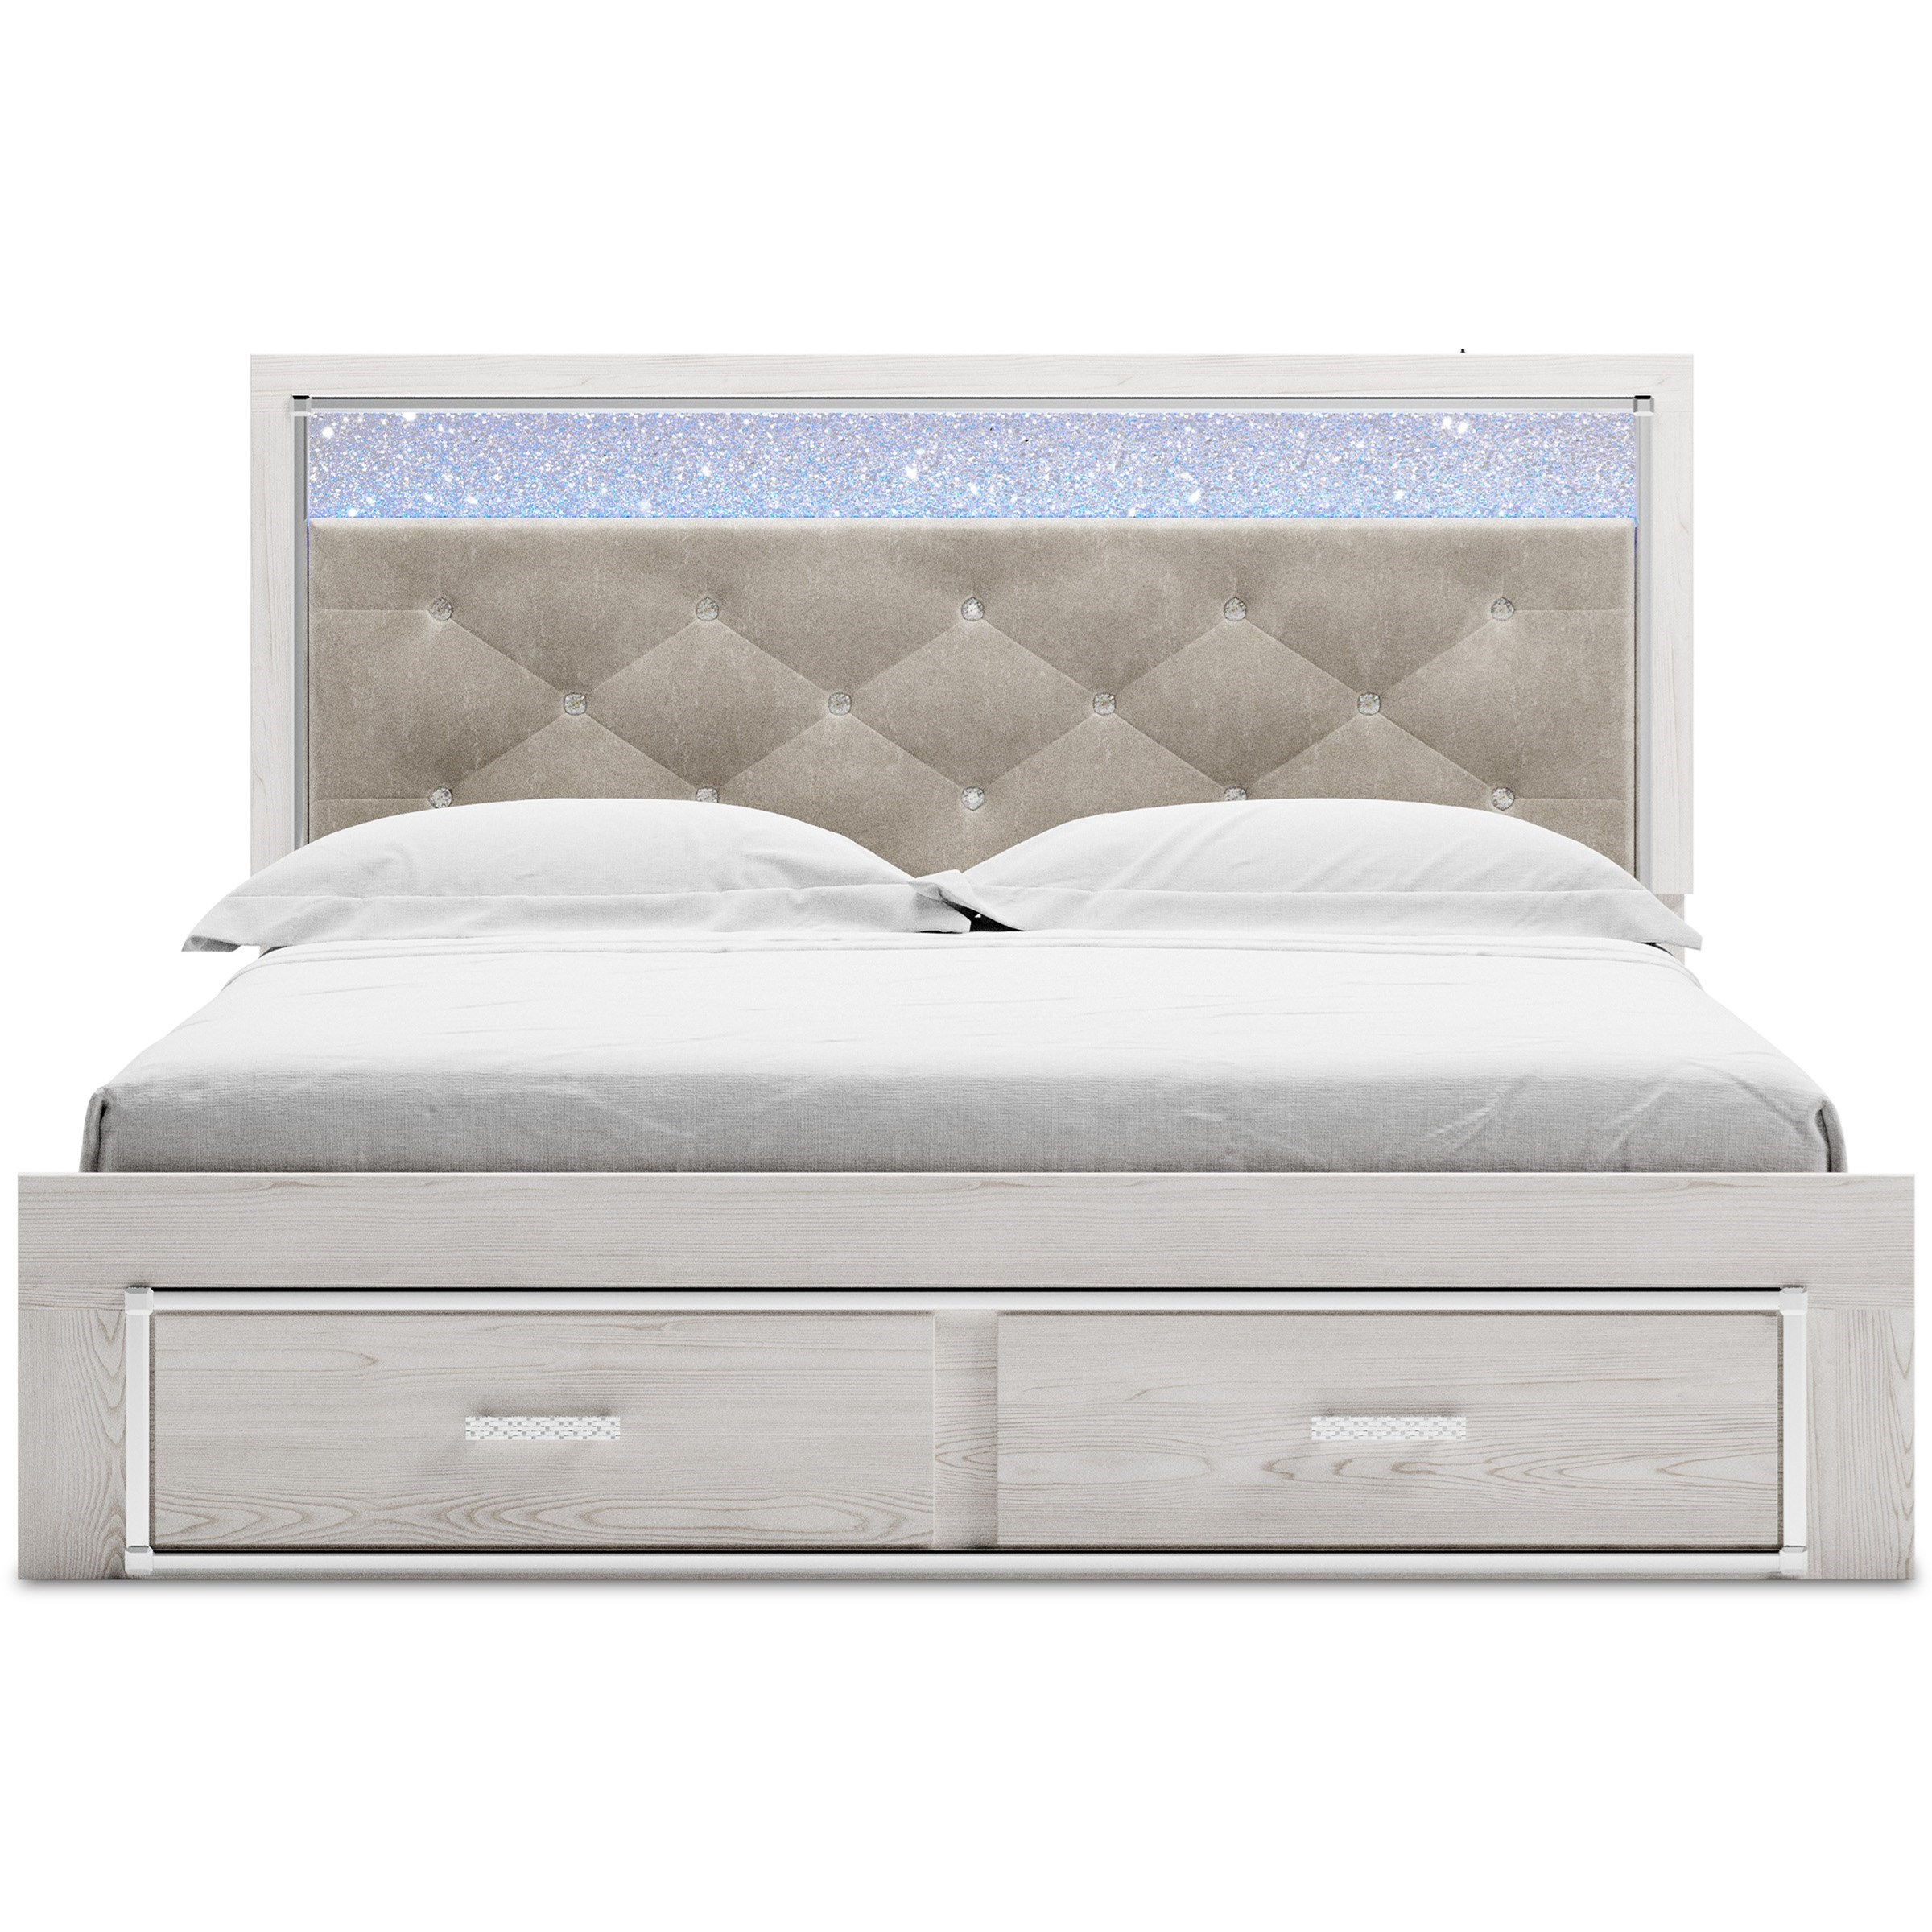 Signature Design By Ashley Altyra King Storage Bed With Upholstered Headboard Houston S Yuma Furniture Upholstered Beds